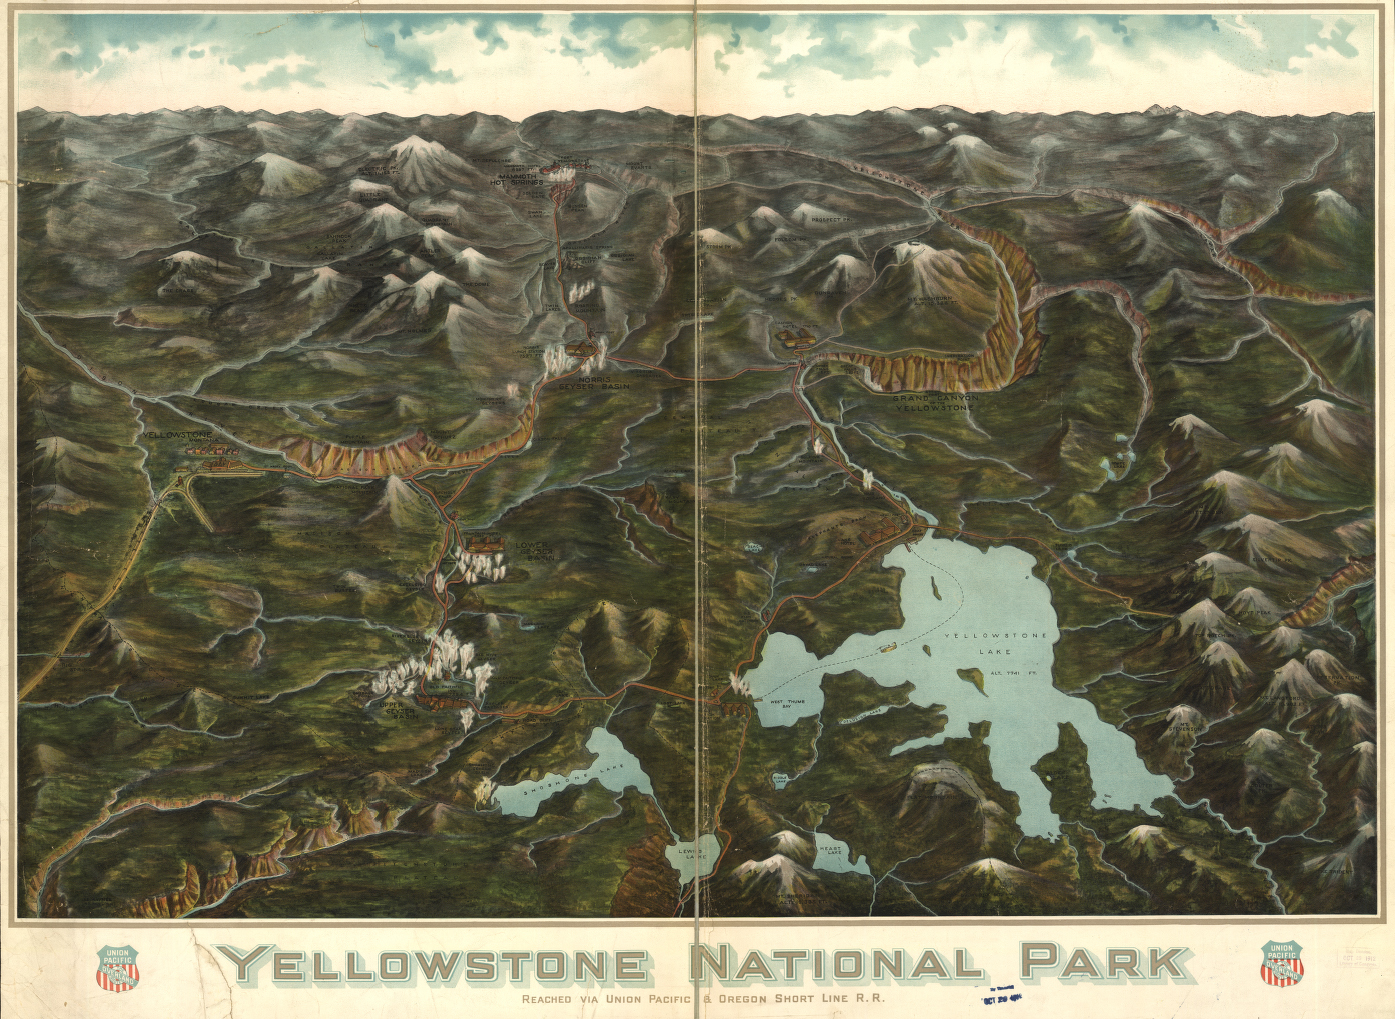 Yellowstone National Park Union Pacific Historical Map from the Library of Congress Collection